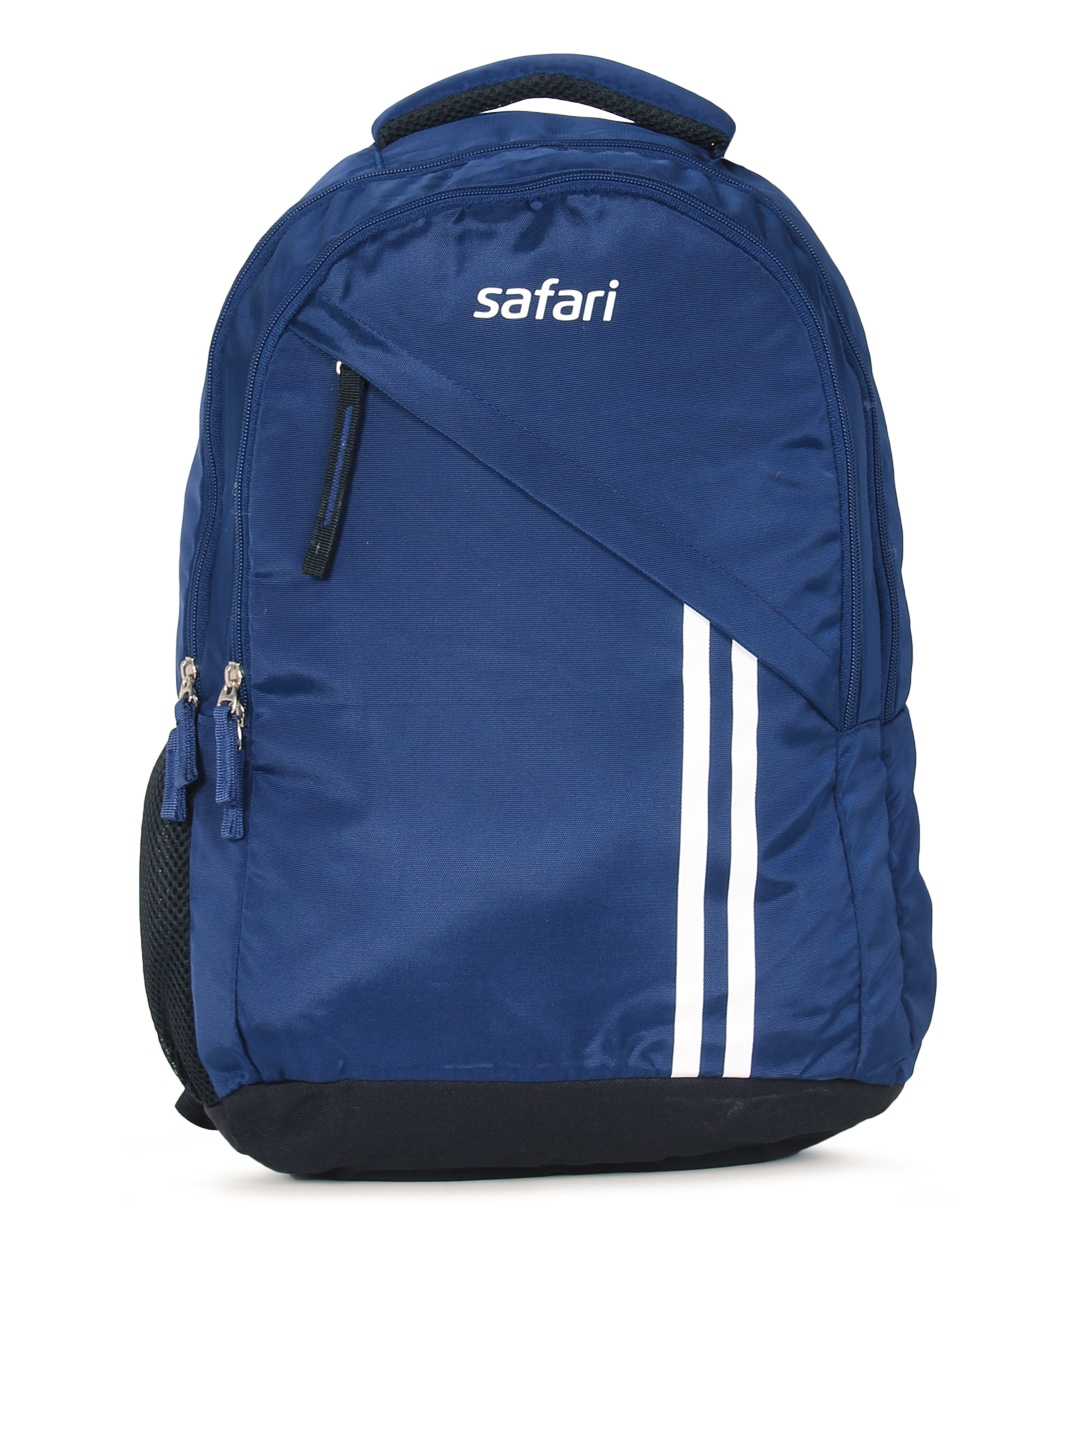 7cdab53ed561 Small Backpacks   Bags - Buy Small Backpacks   Bags online in India